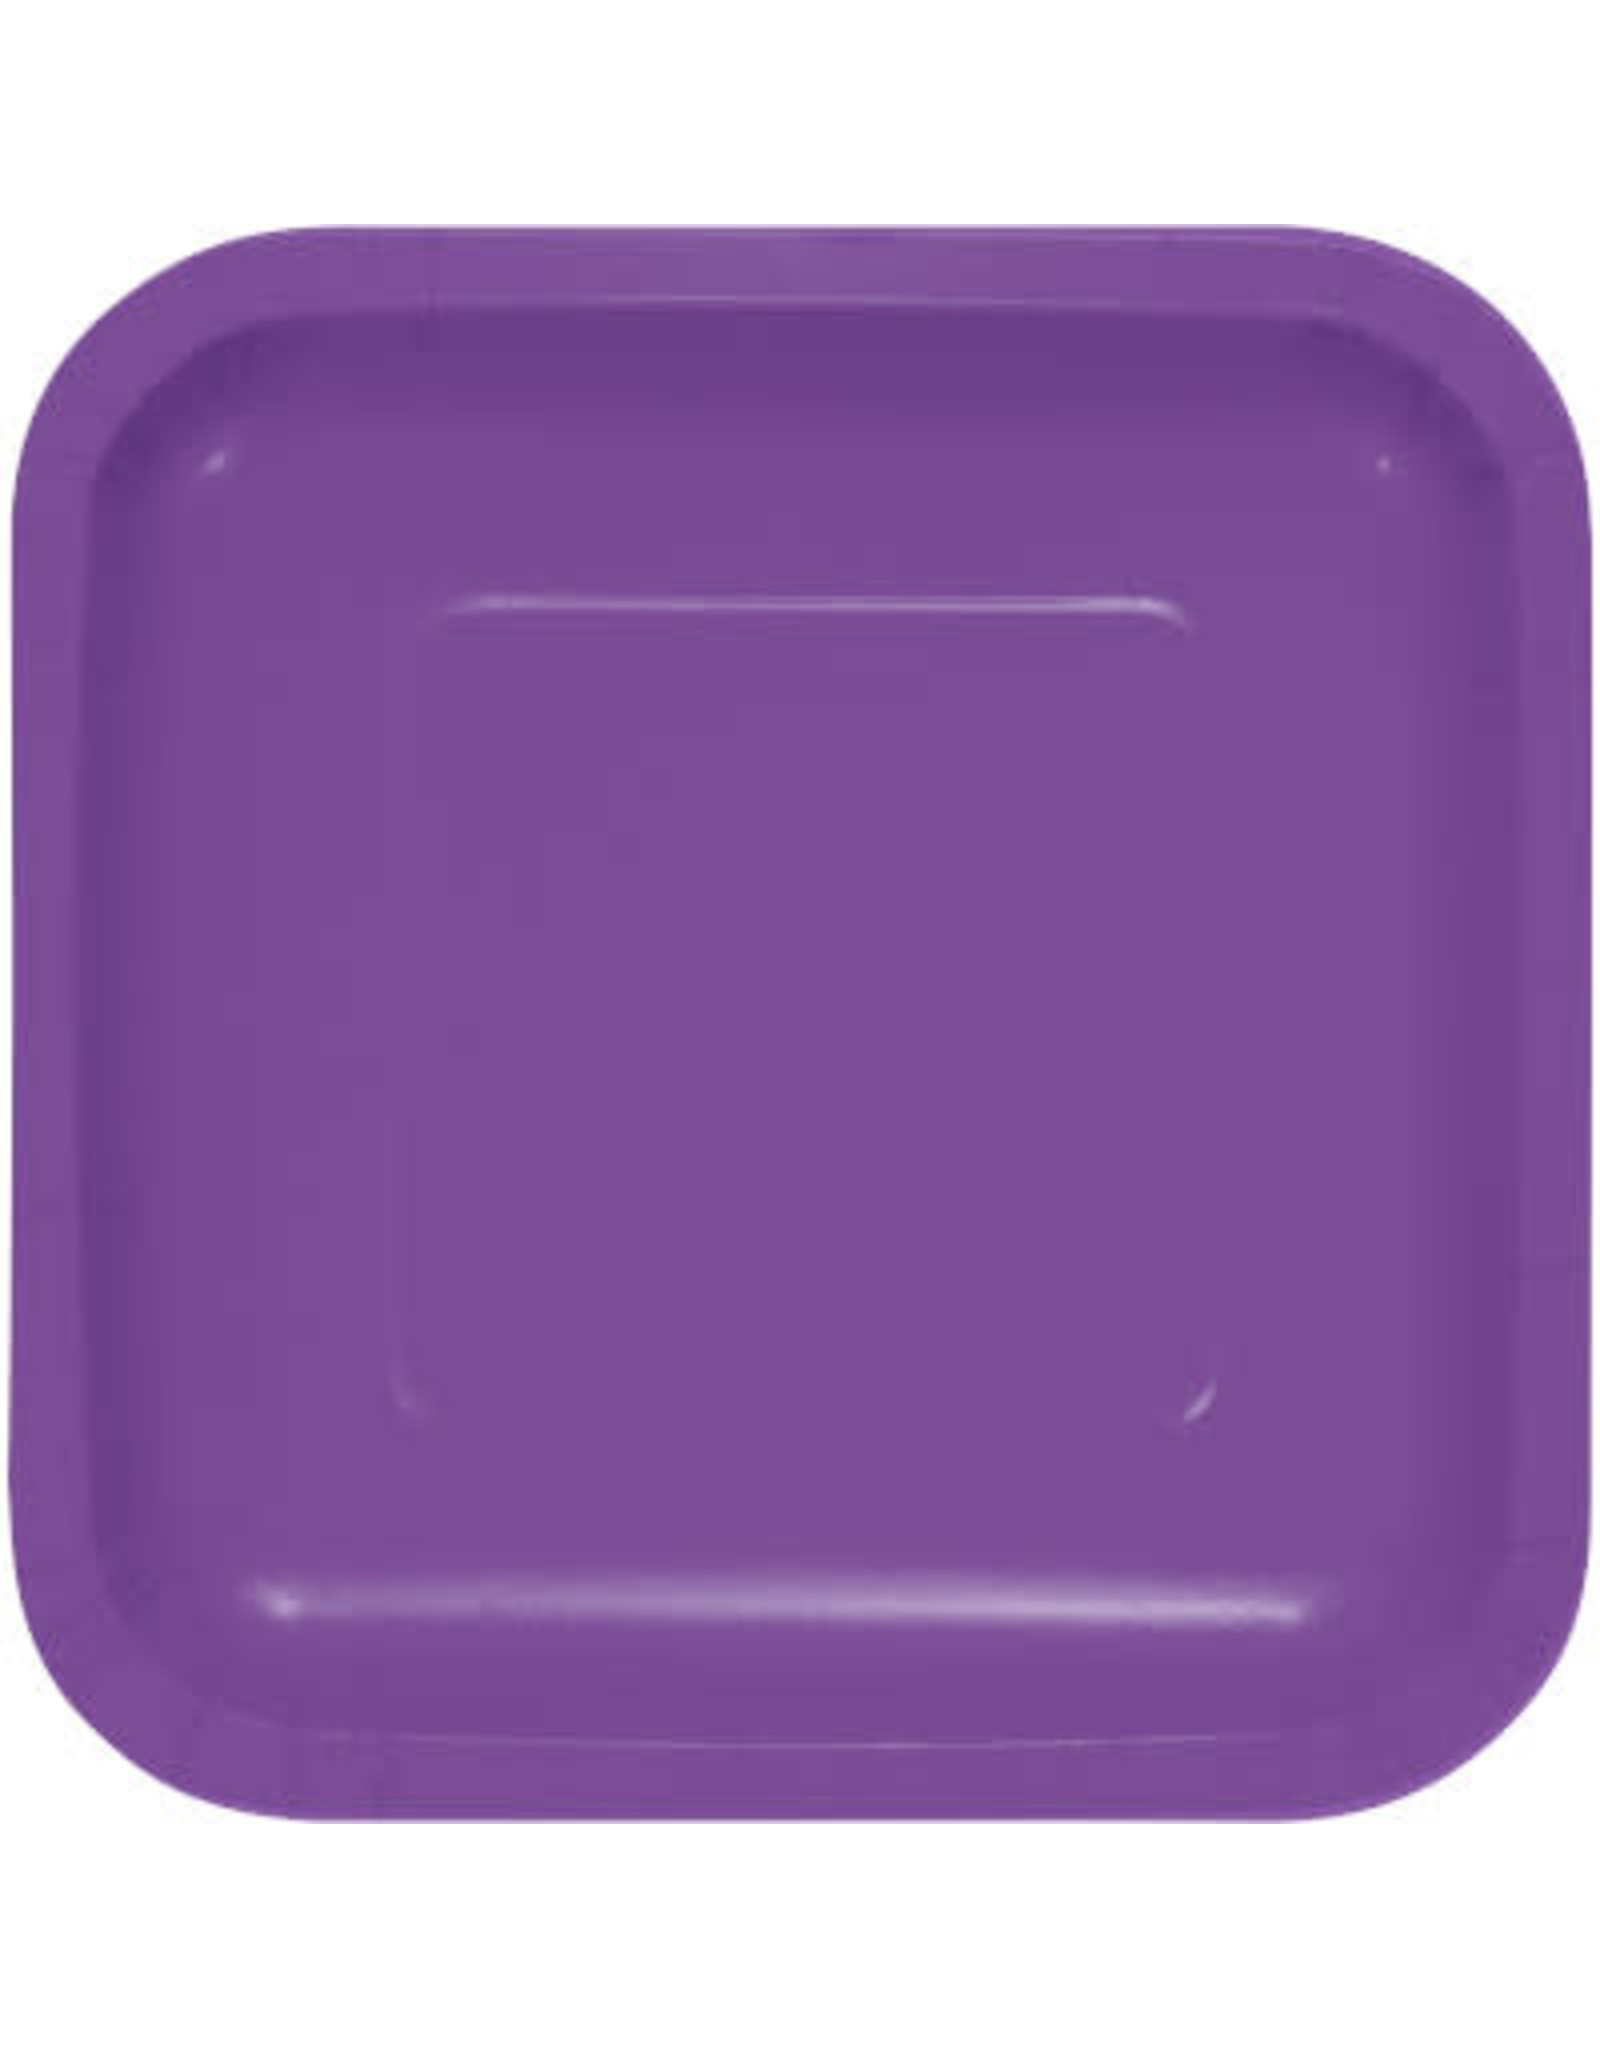 Touch of Color AMETHYST SQUARE DESSERT PLATES